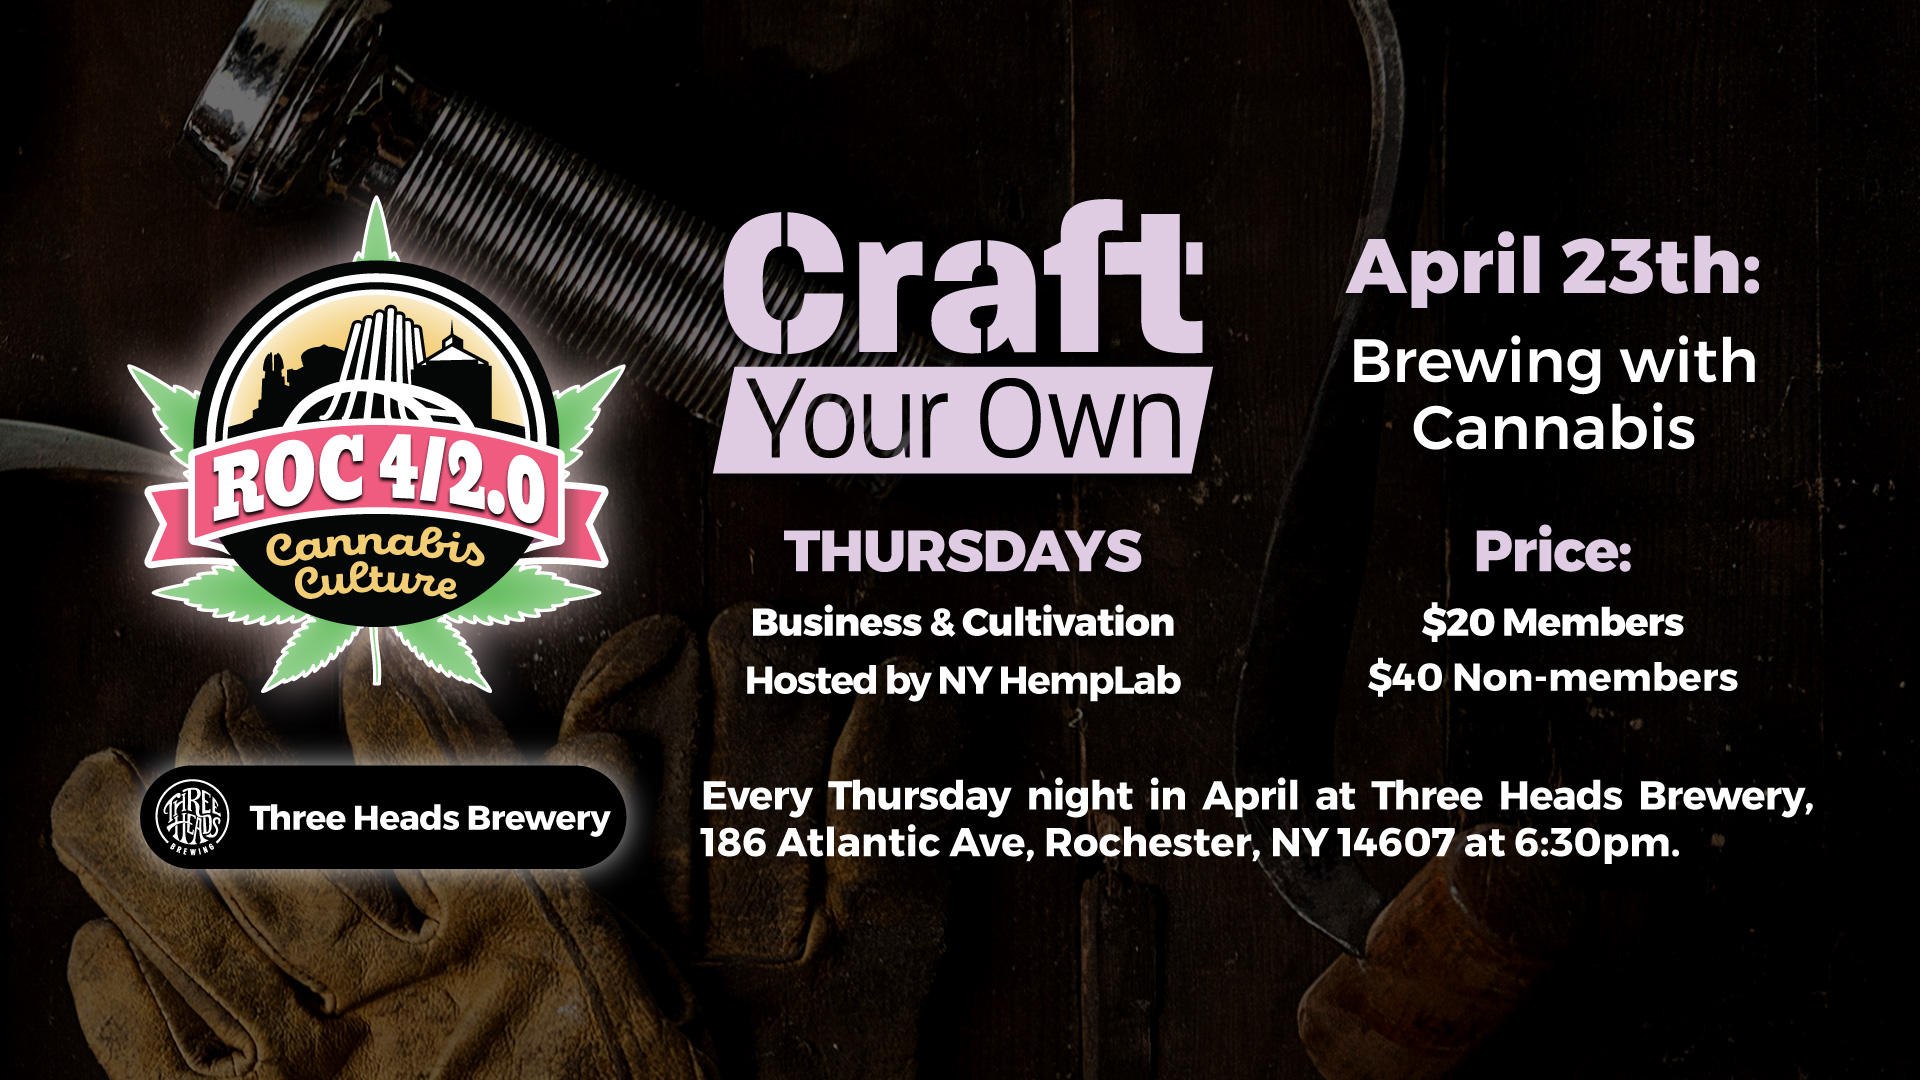 4/23 Brewing with Cannabis